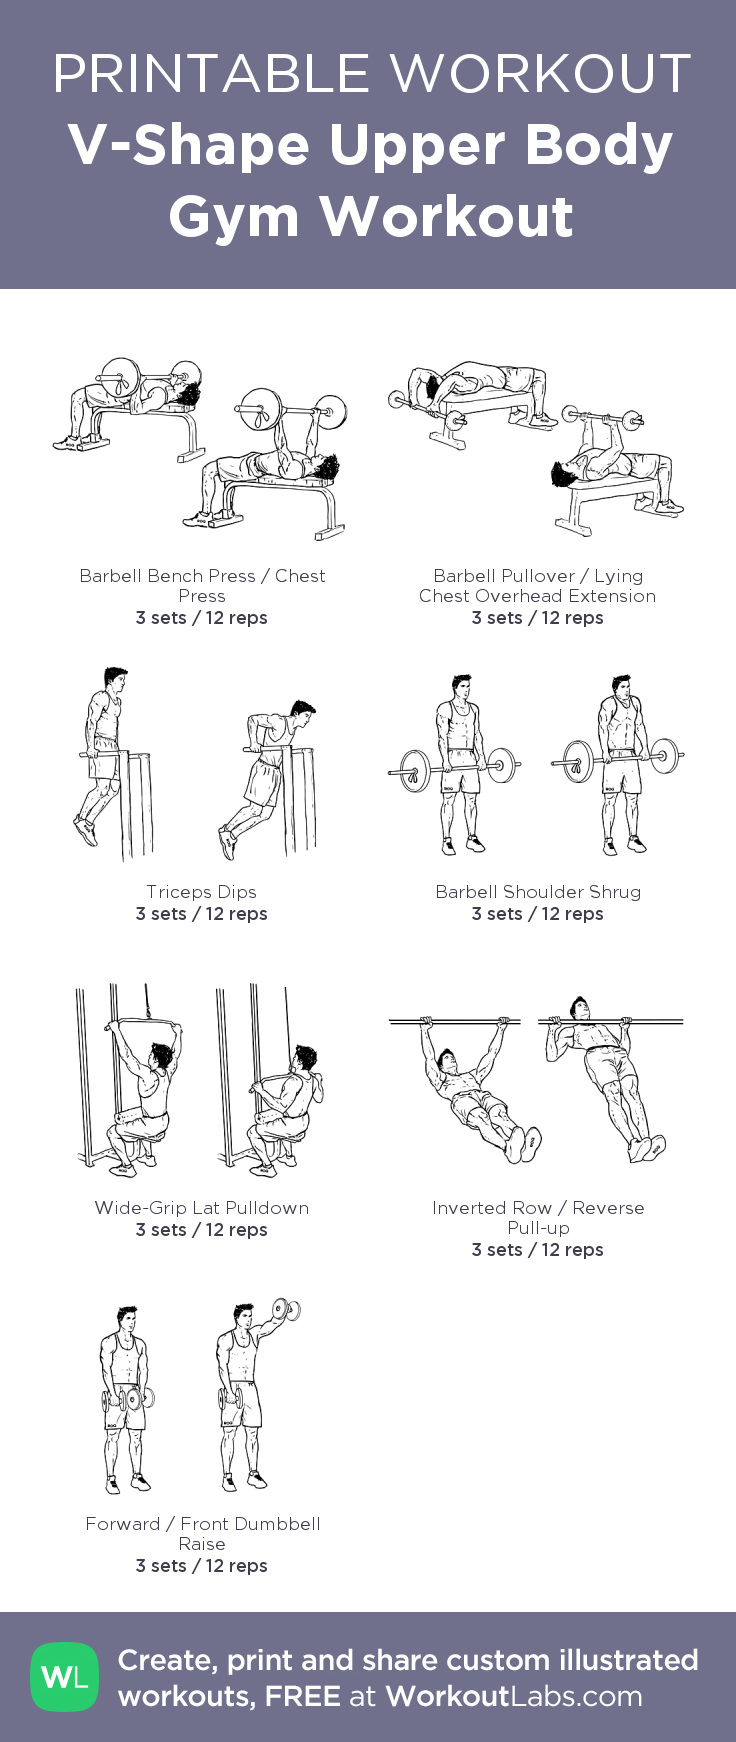 V-Shape Upper Body Gym Workout: my visual workout created at